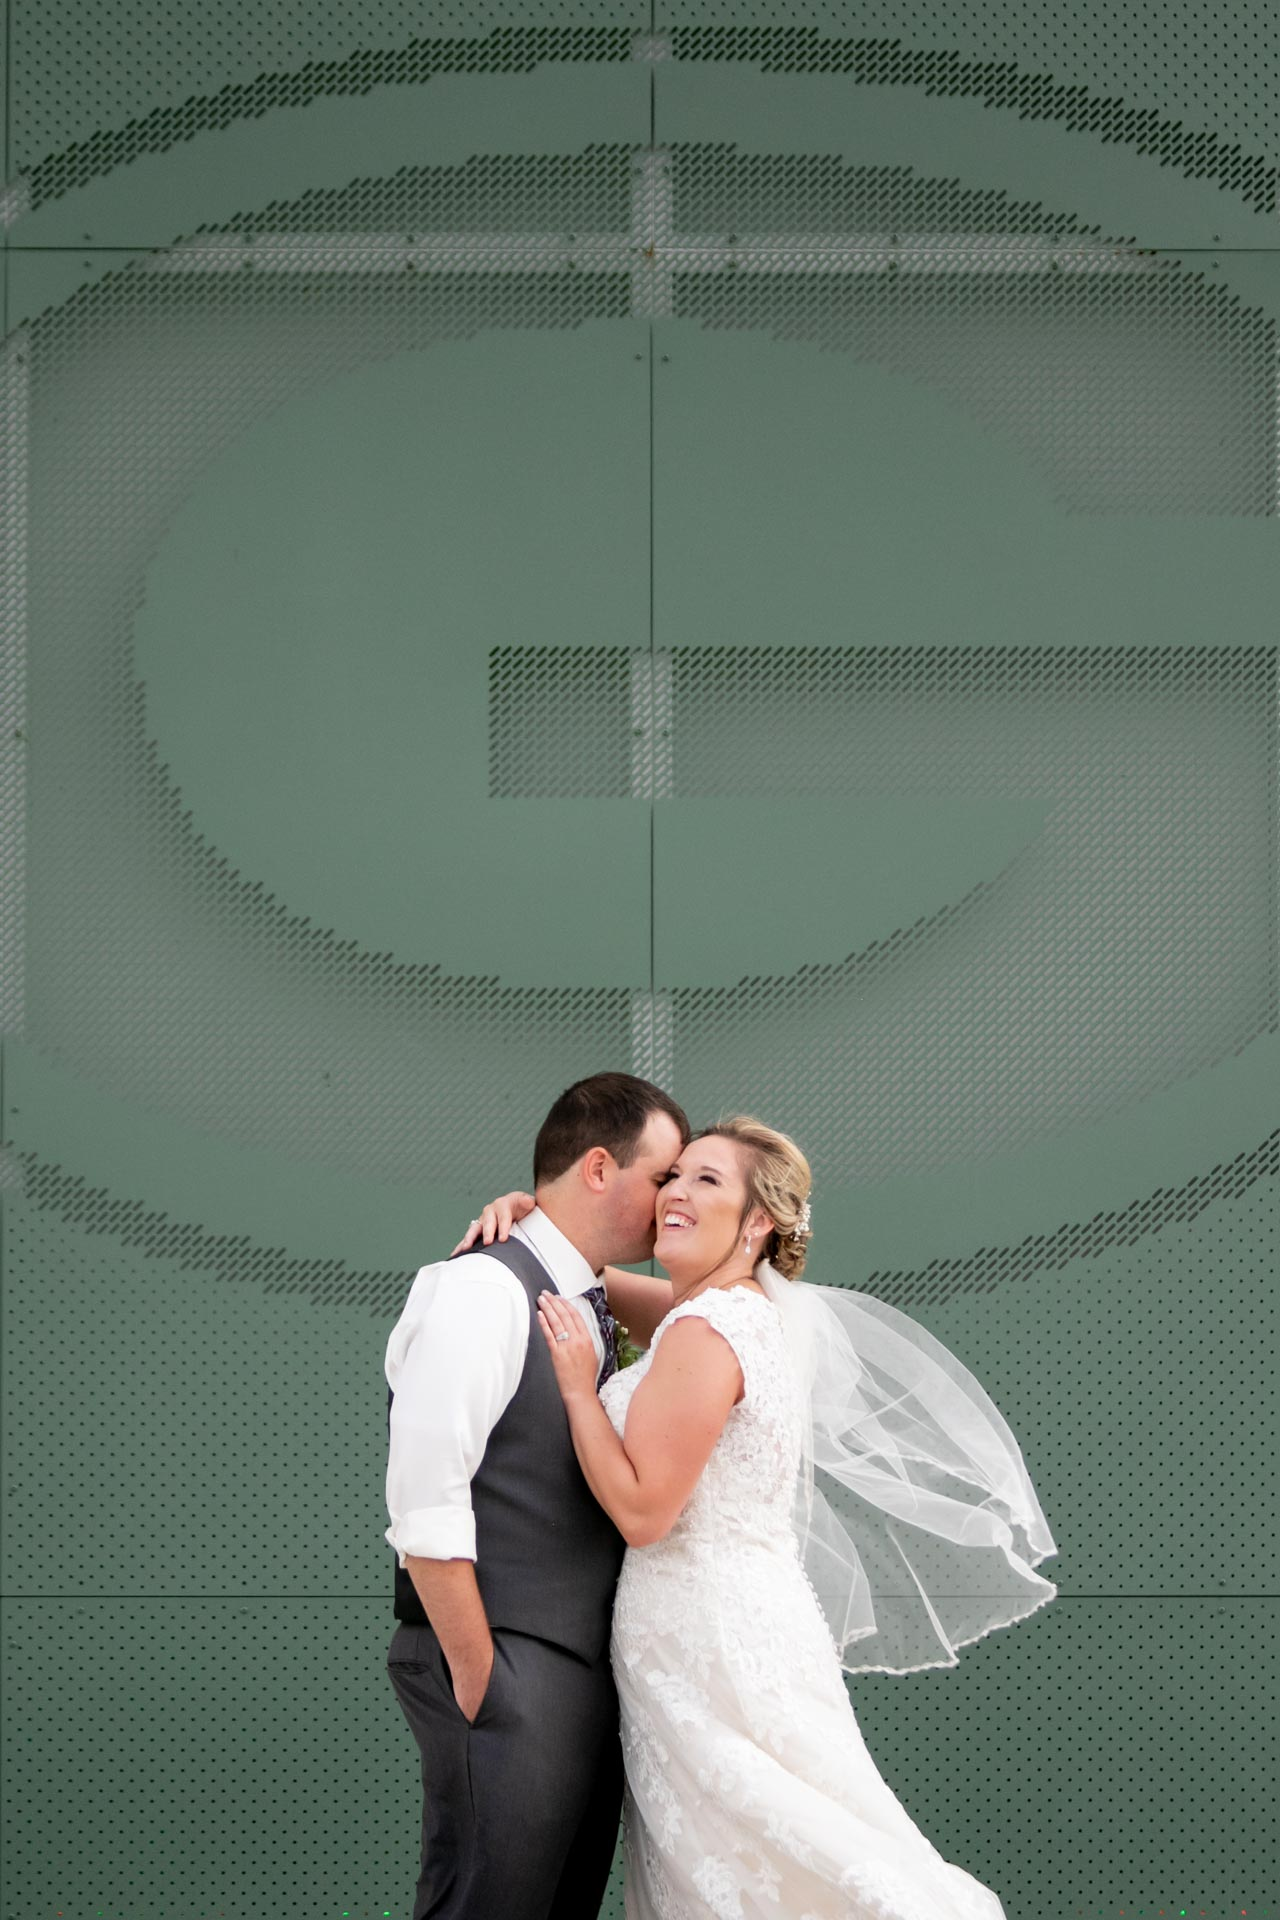 lambeau-field-wedding-bride-groom-adam-shea-photography-green-bay-appleton-neenah-photographer-9.jpg